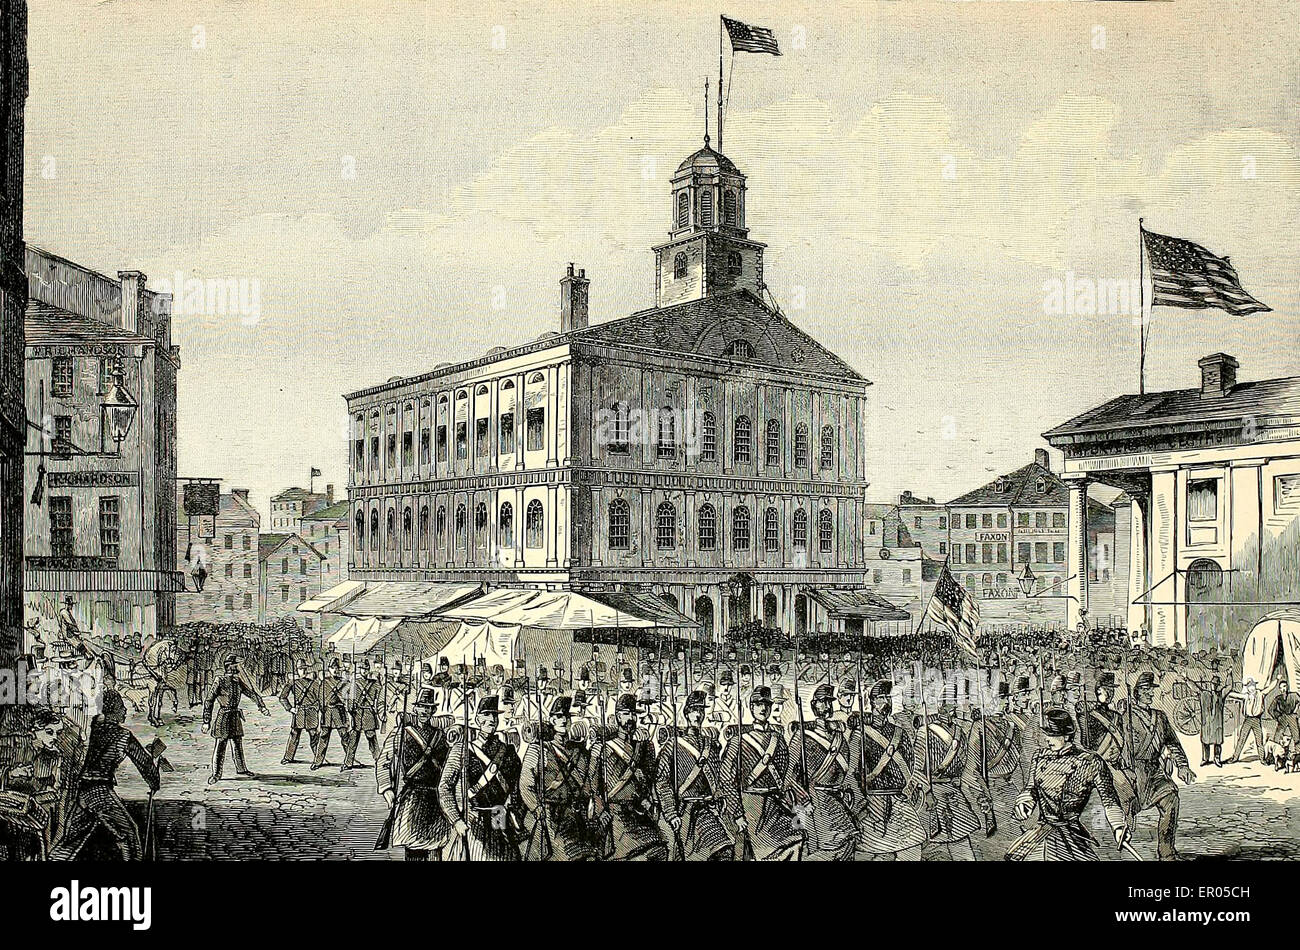 A new Regiment of Massachusetts Volunteers passing Faneuil Hall on their way to the War - USA Civil War, circa 1861 - Stock Image